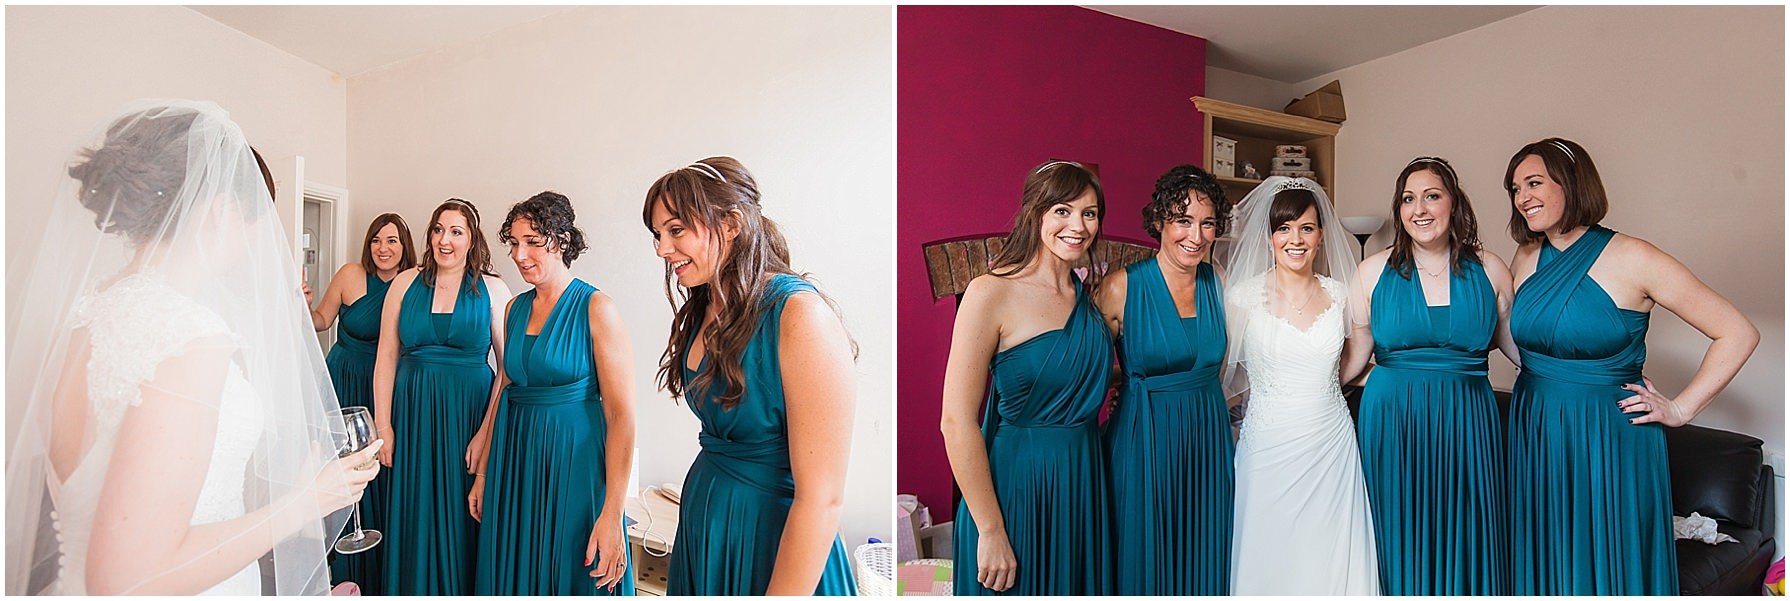 Tatton-Hall-Wedding-Photography-04